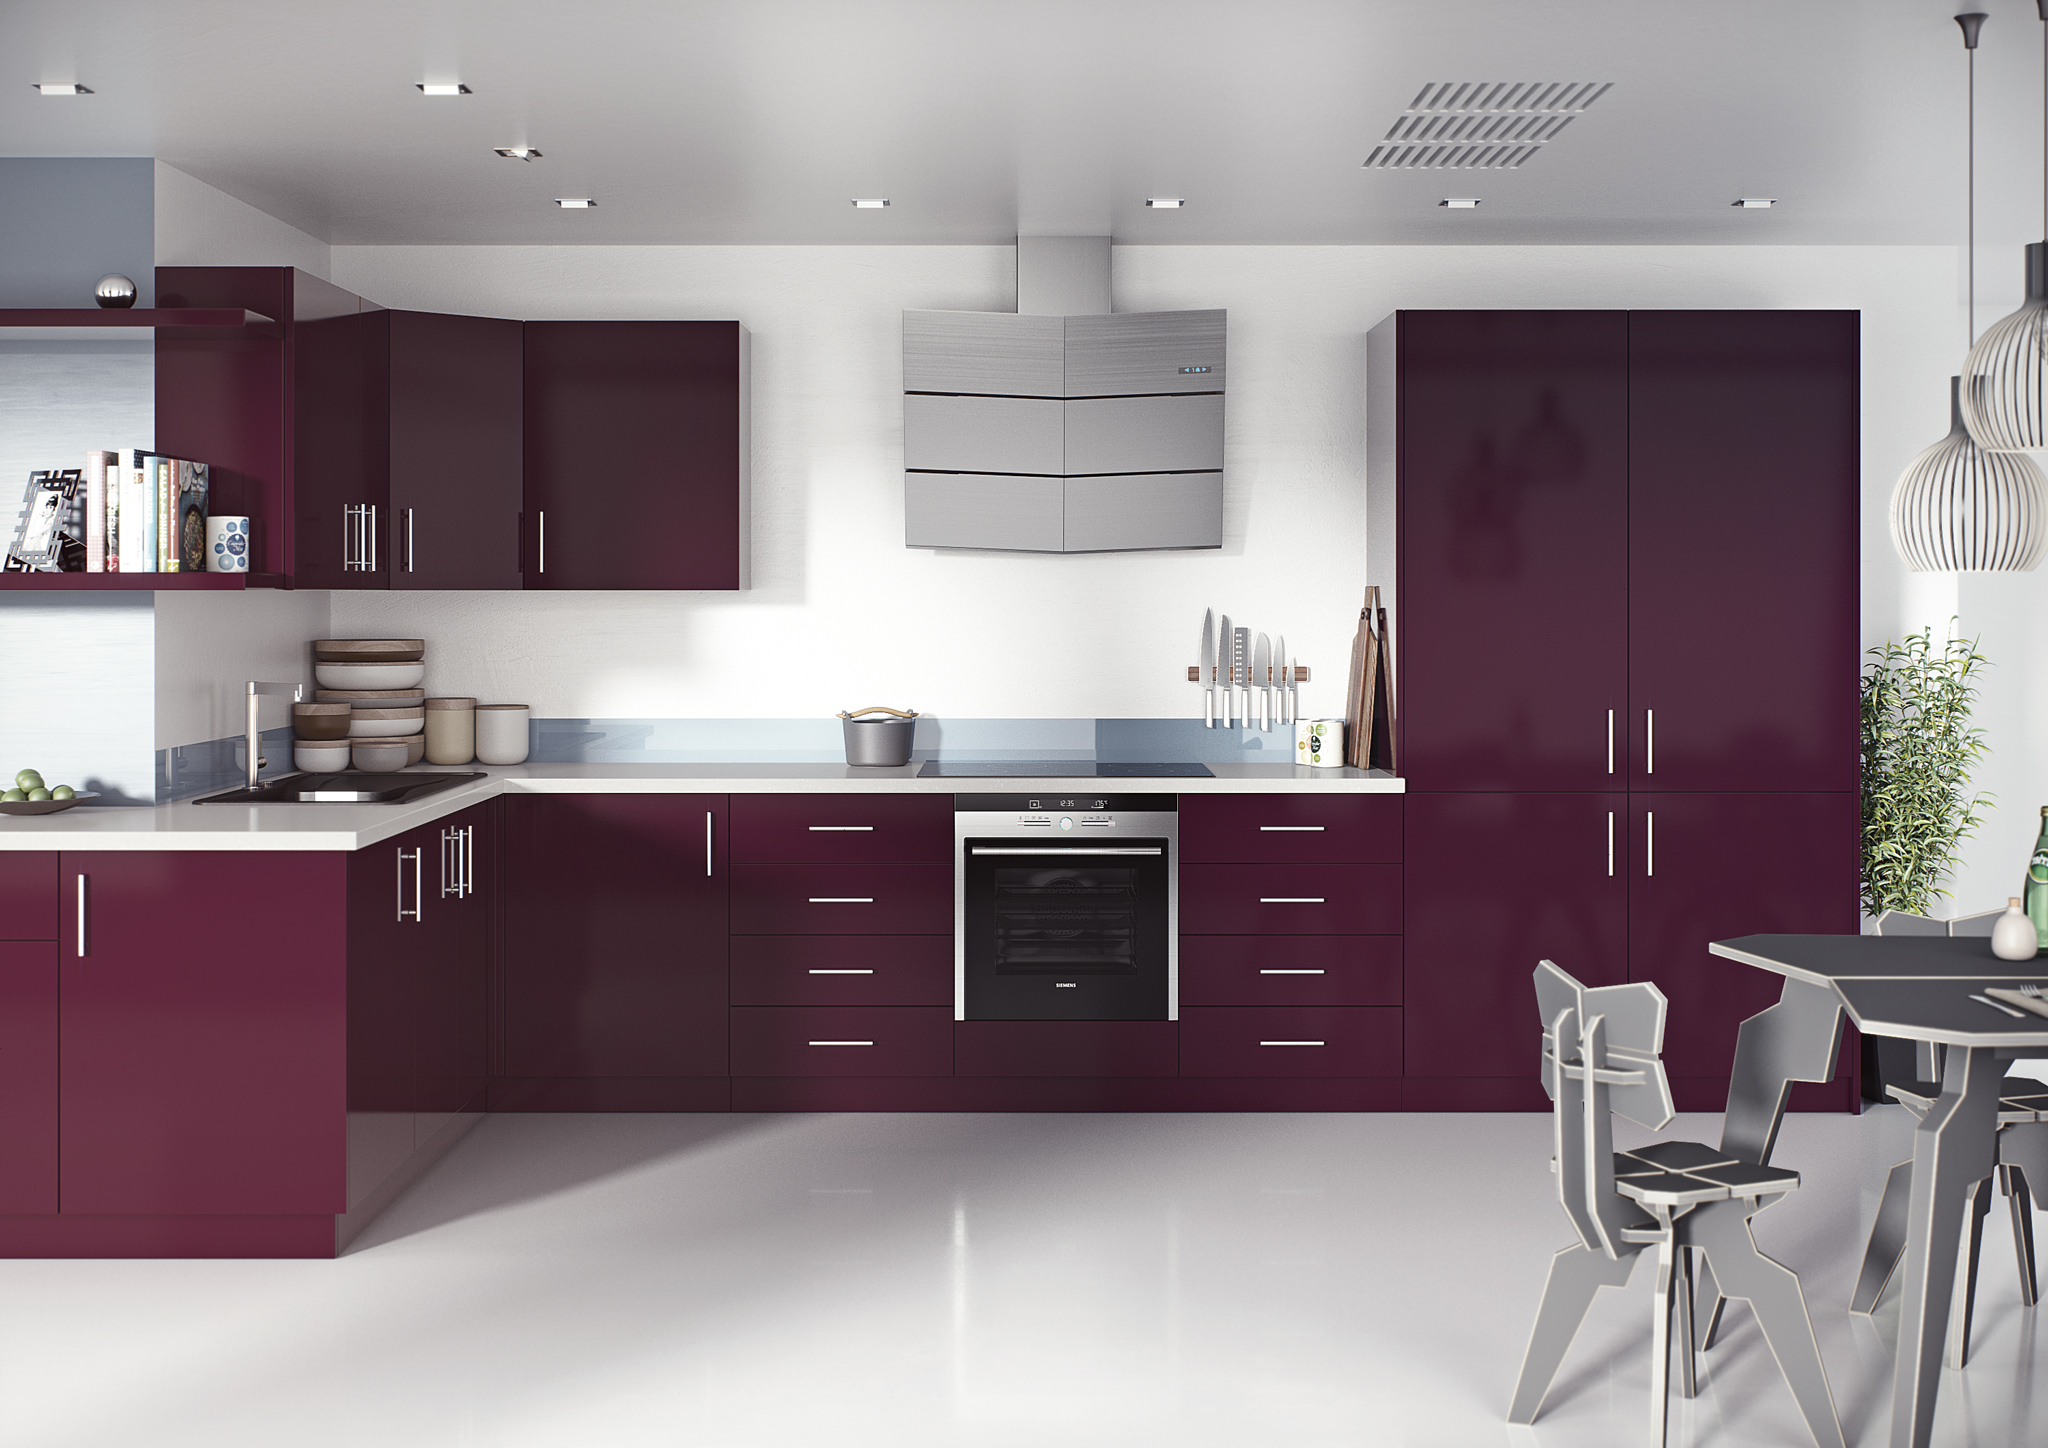 Violet / Aubergine Acrylic Gloss Kitchen